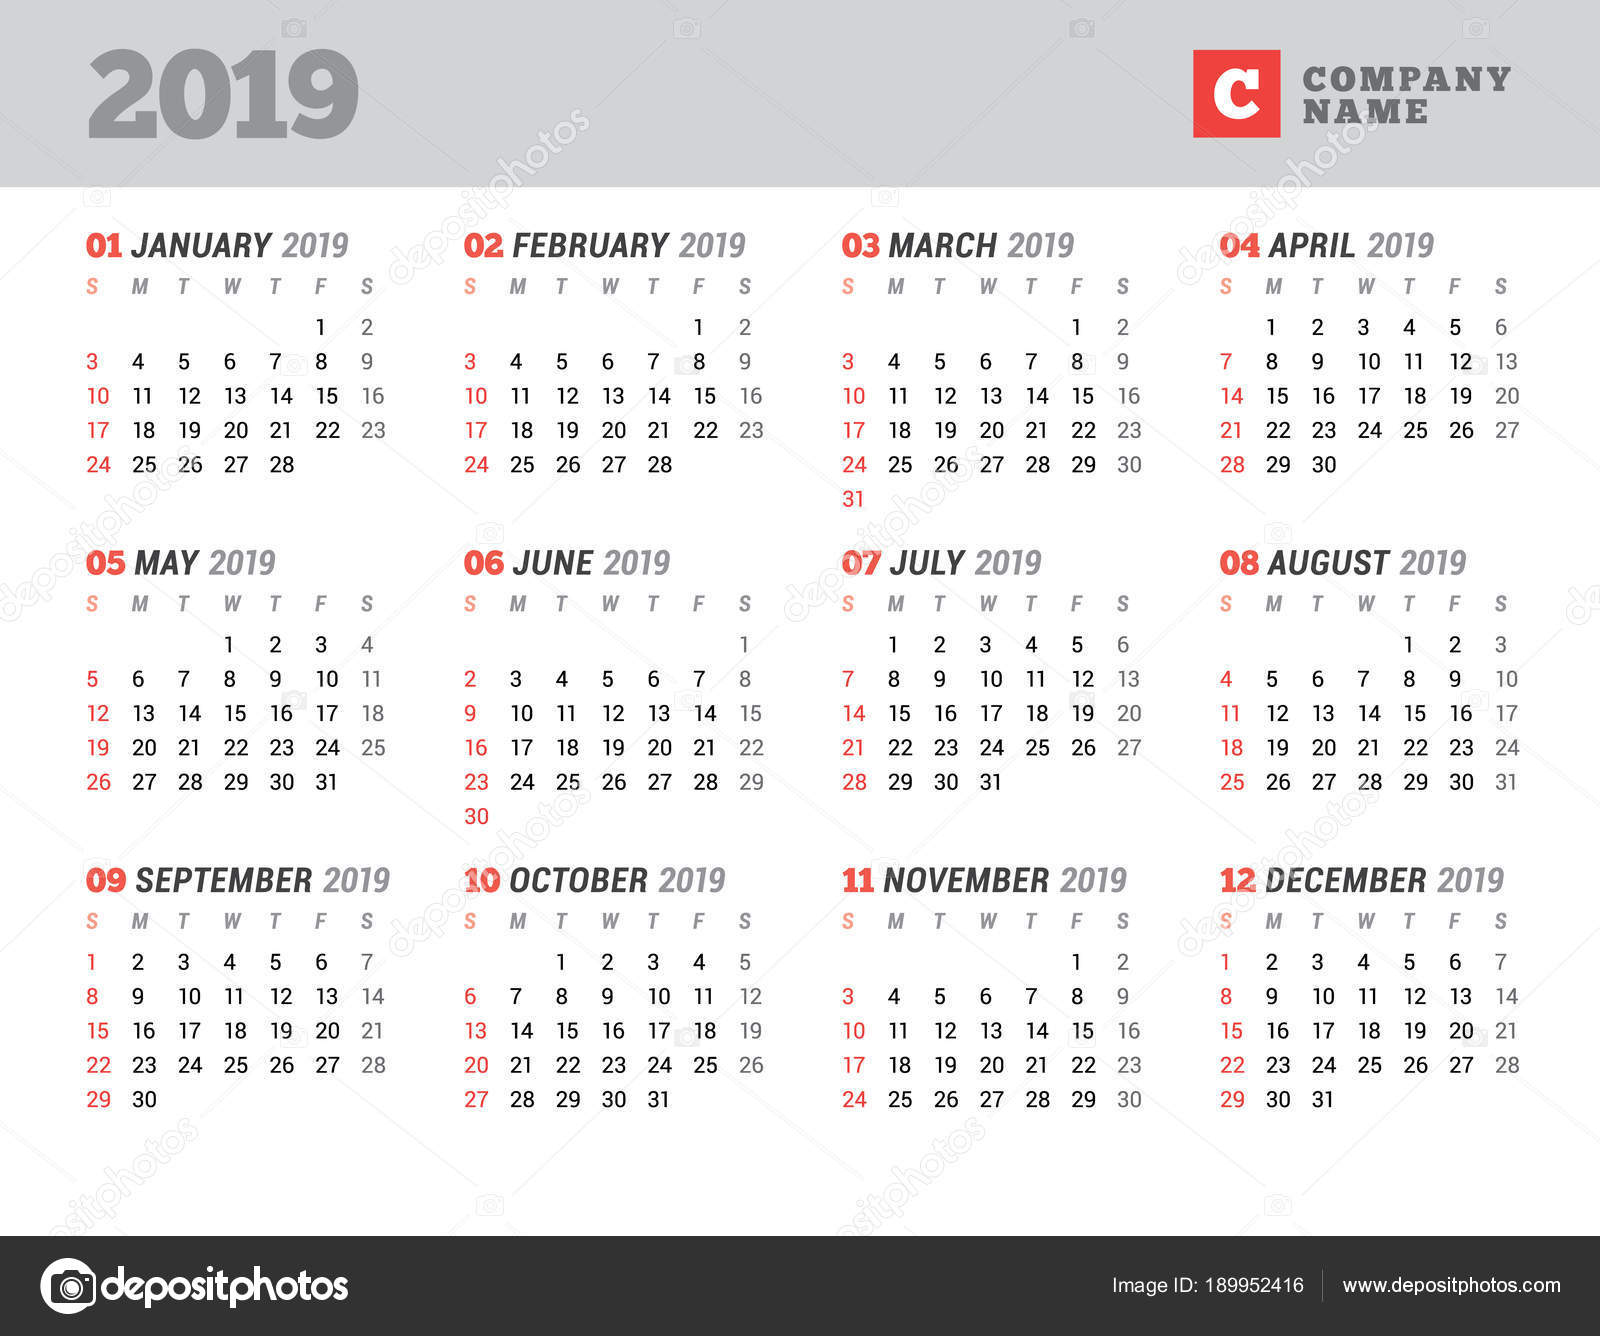 calendar template for 2019 year stationery design week starts on sunday 12 months